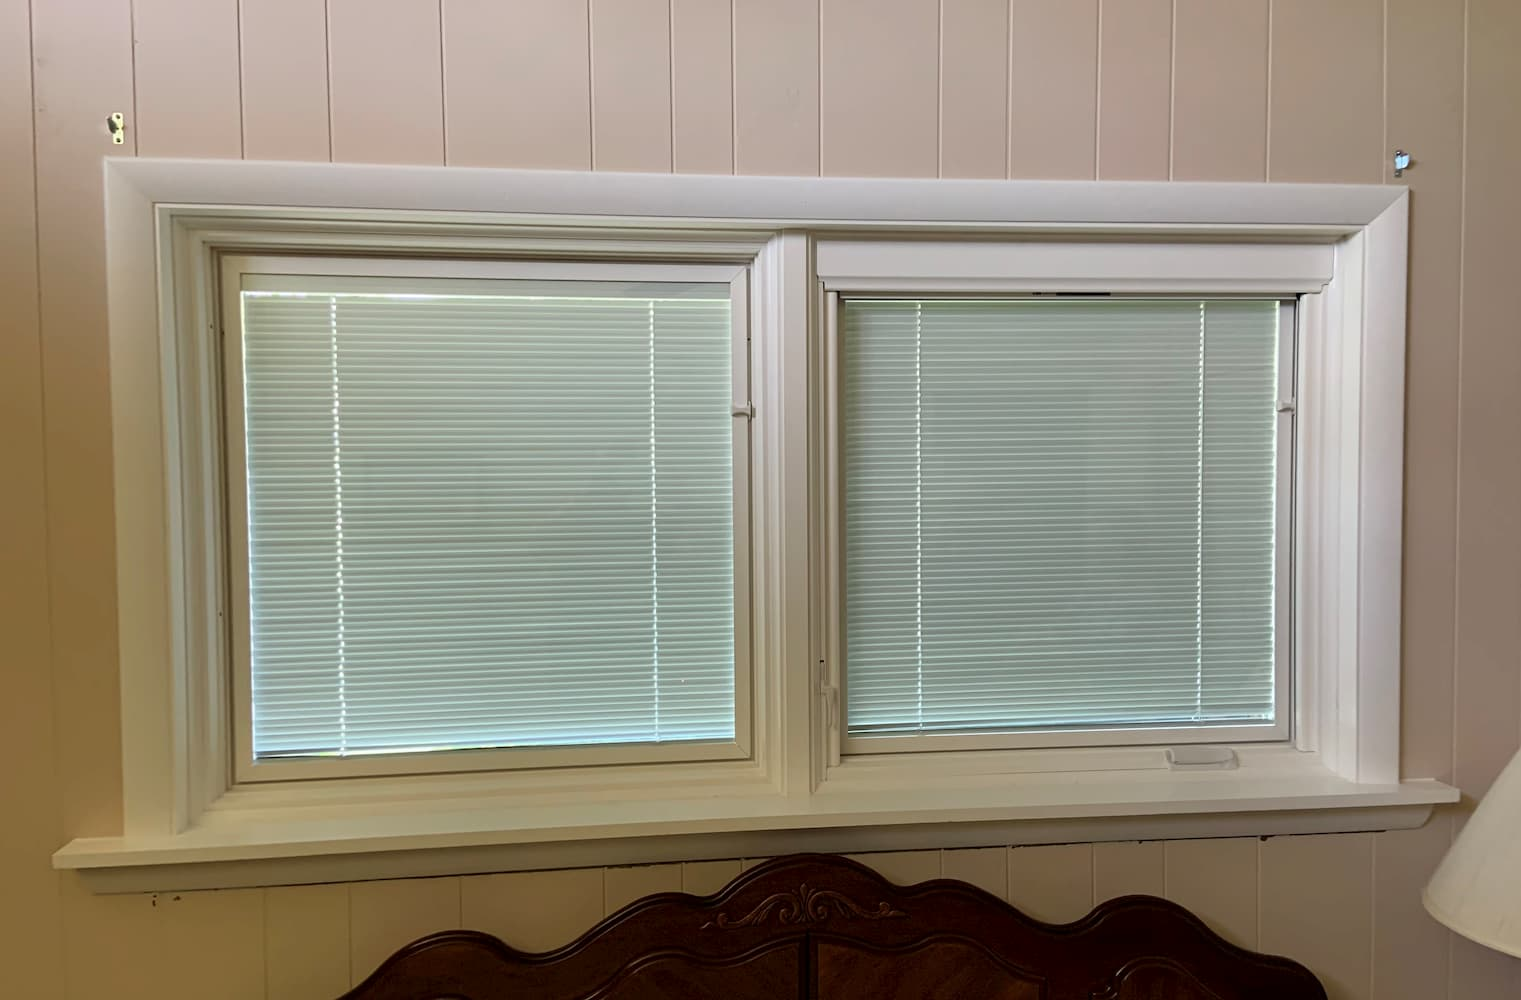 Interview view of two new casement windows with between-the-glass blinds